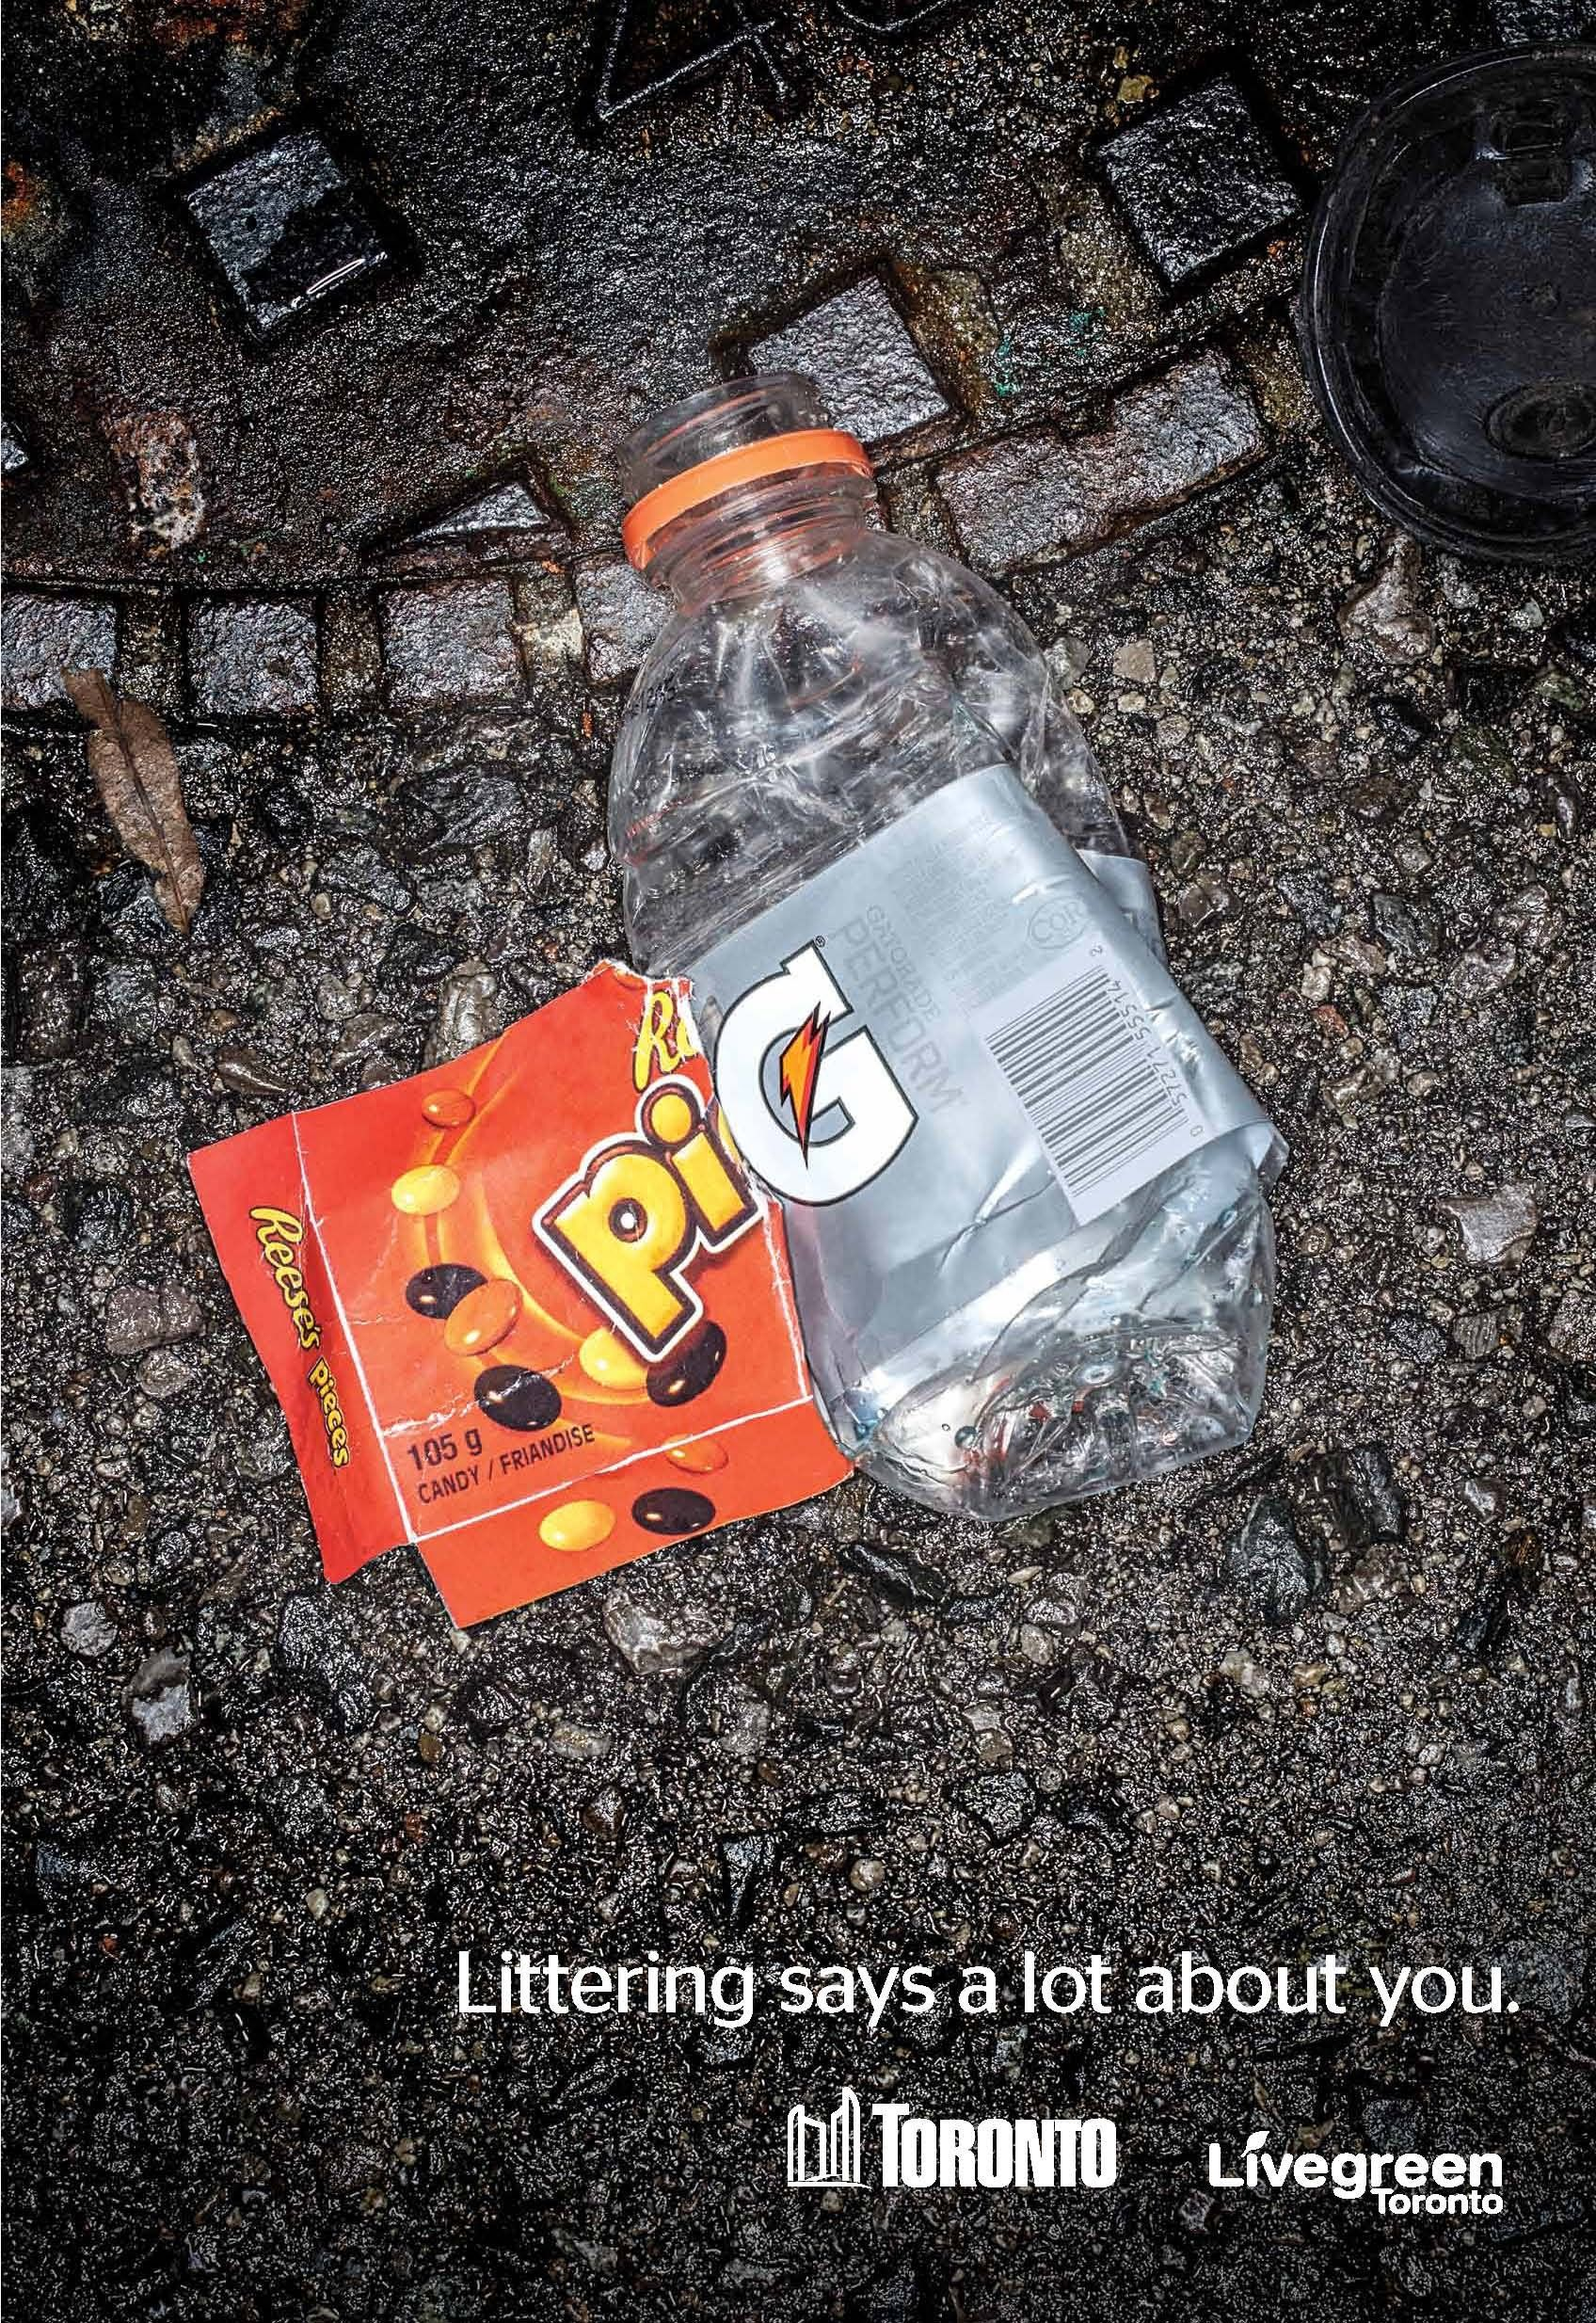 Littering Says a Lot About You By LiveGreen (Cancelled - Trademark Violation). - http://www.theinspiration.com/2014/09/littering-says-lot-livegreen-cancelled-trademark-violation/